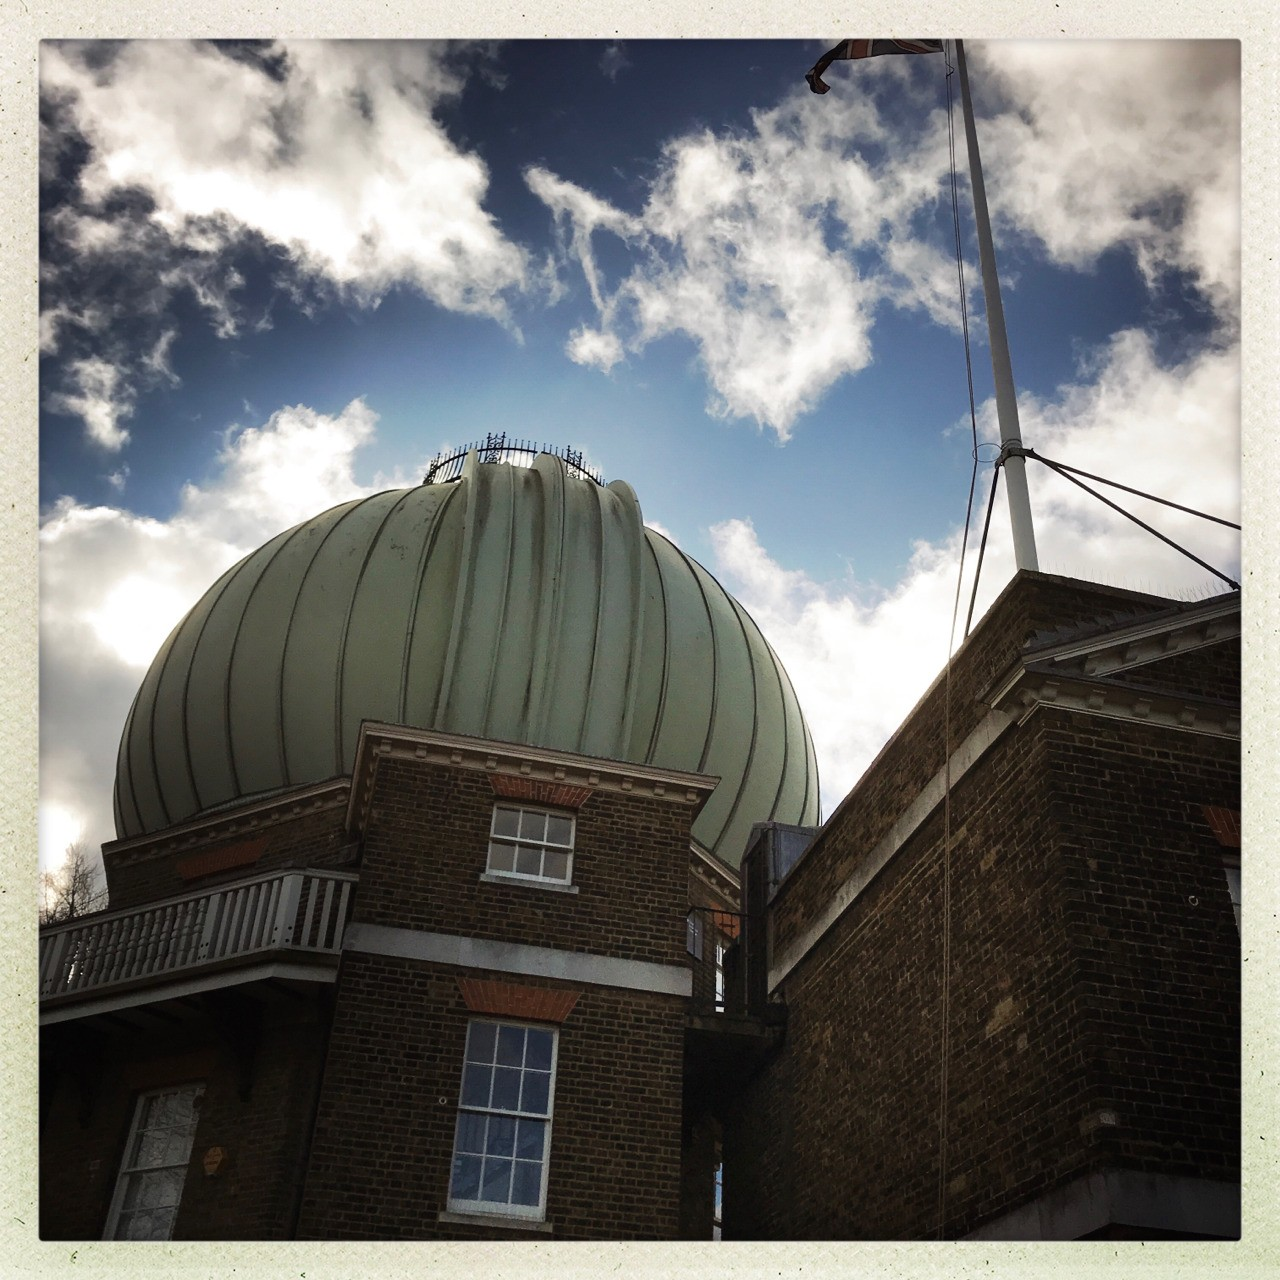 Greenwich observatory using Hipstamatic app